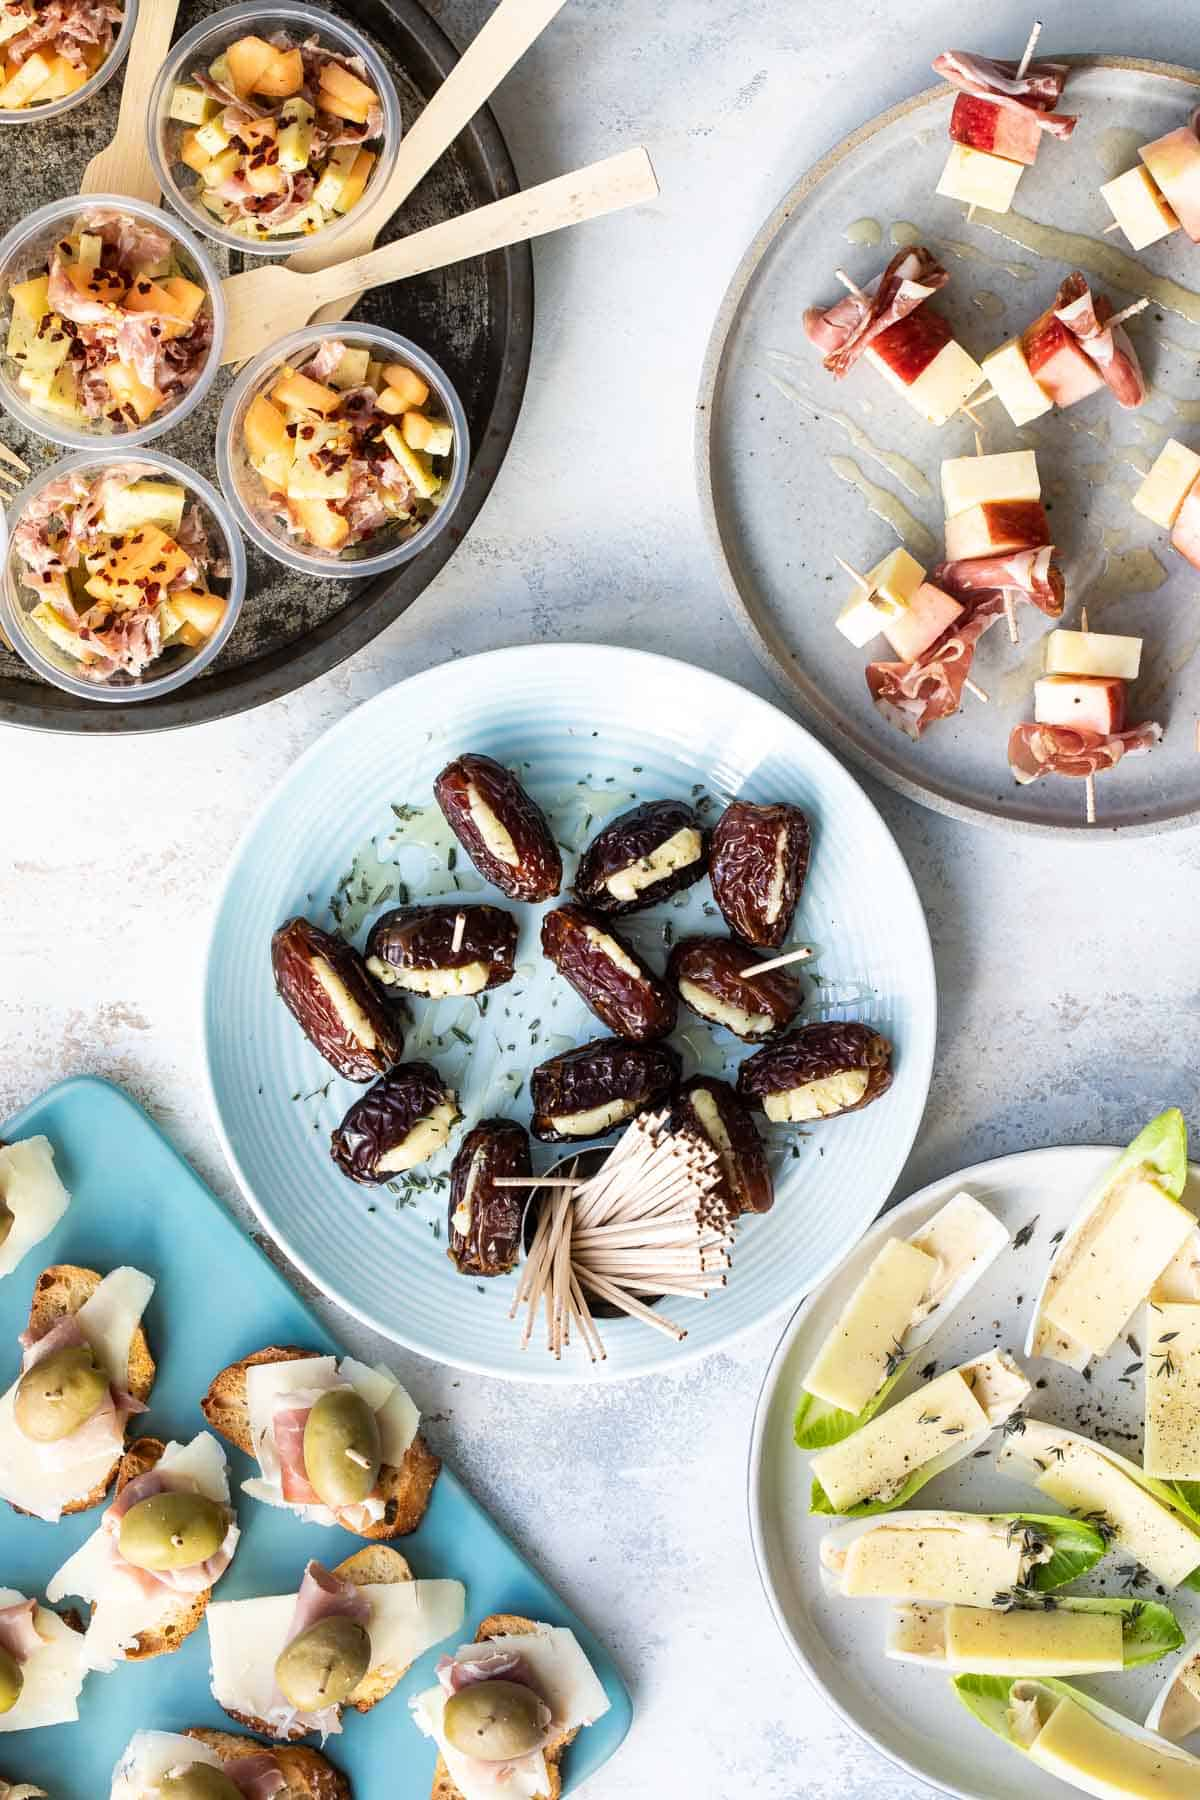 five easy appetizers on plates all made with cheddar cheese.